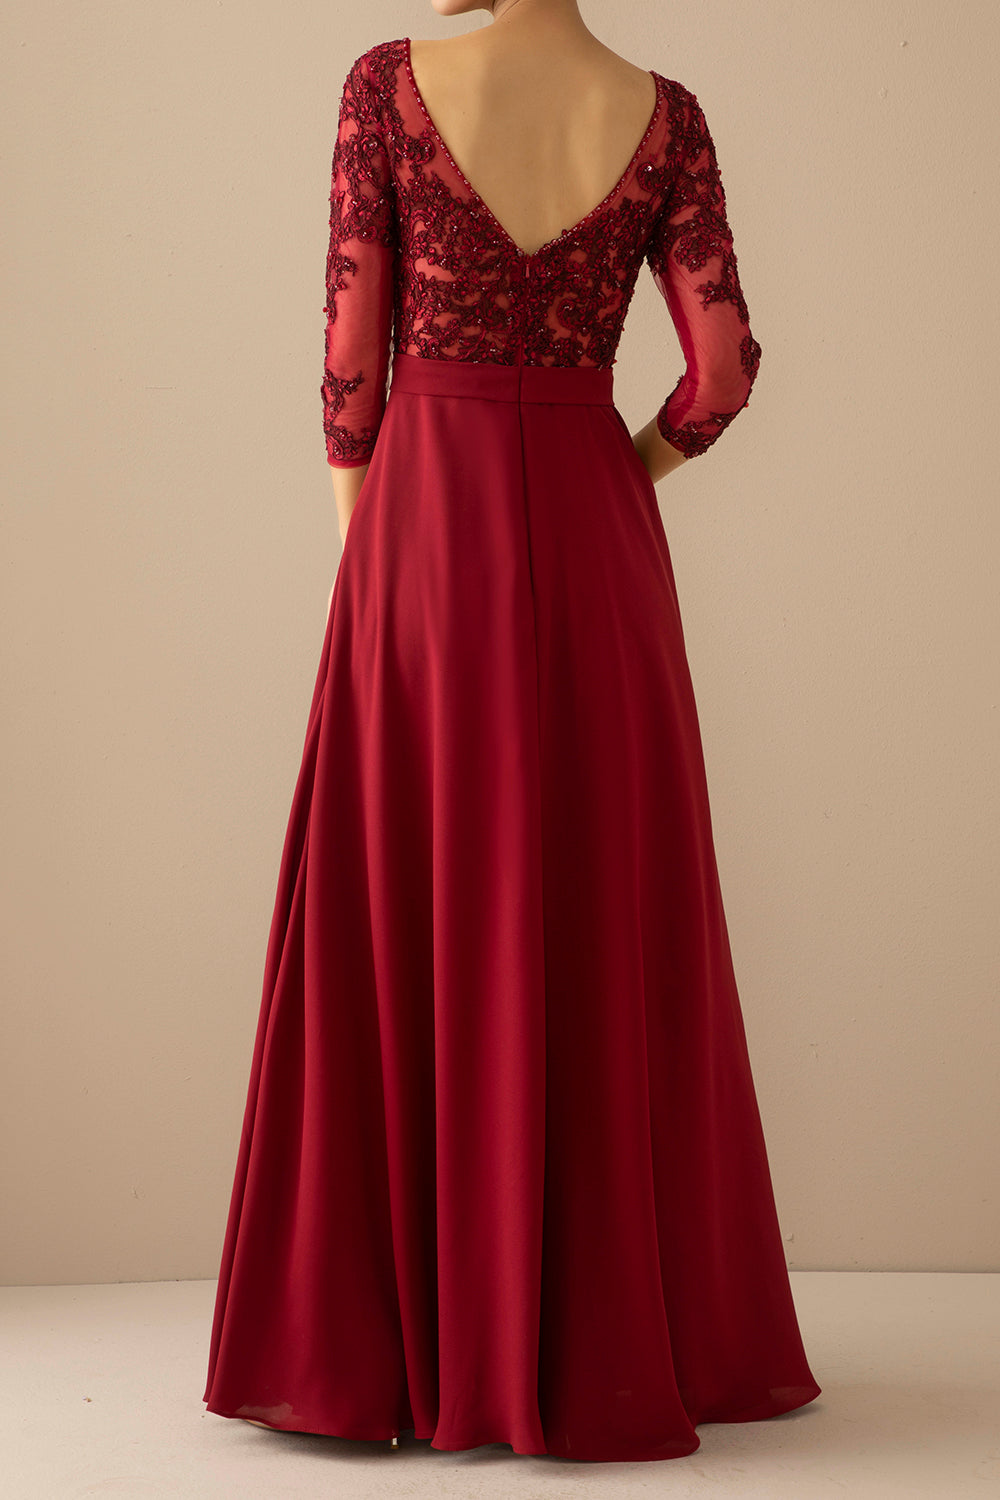 Burgundy Mother of the Bride Dress With Sleeves